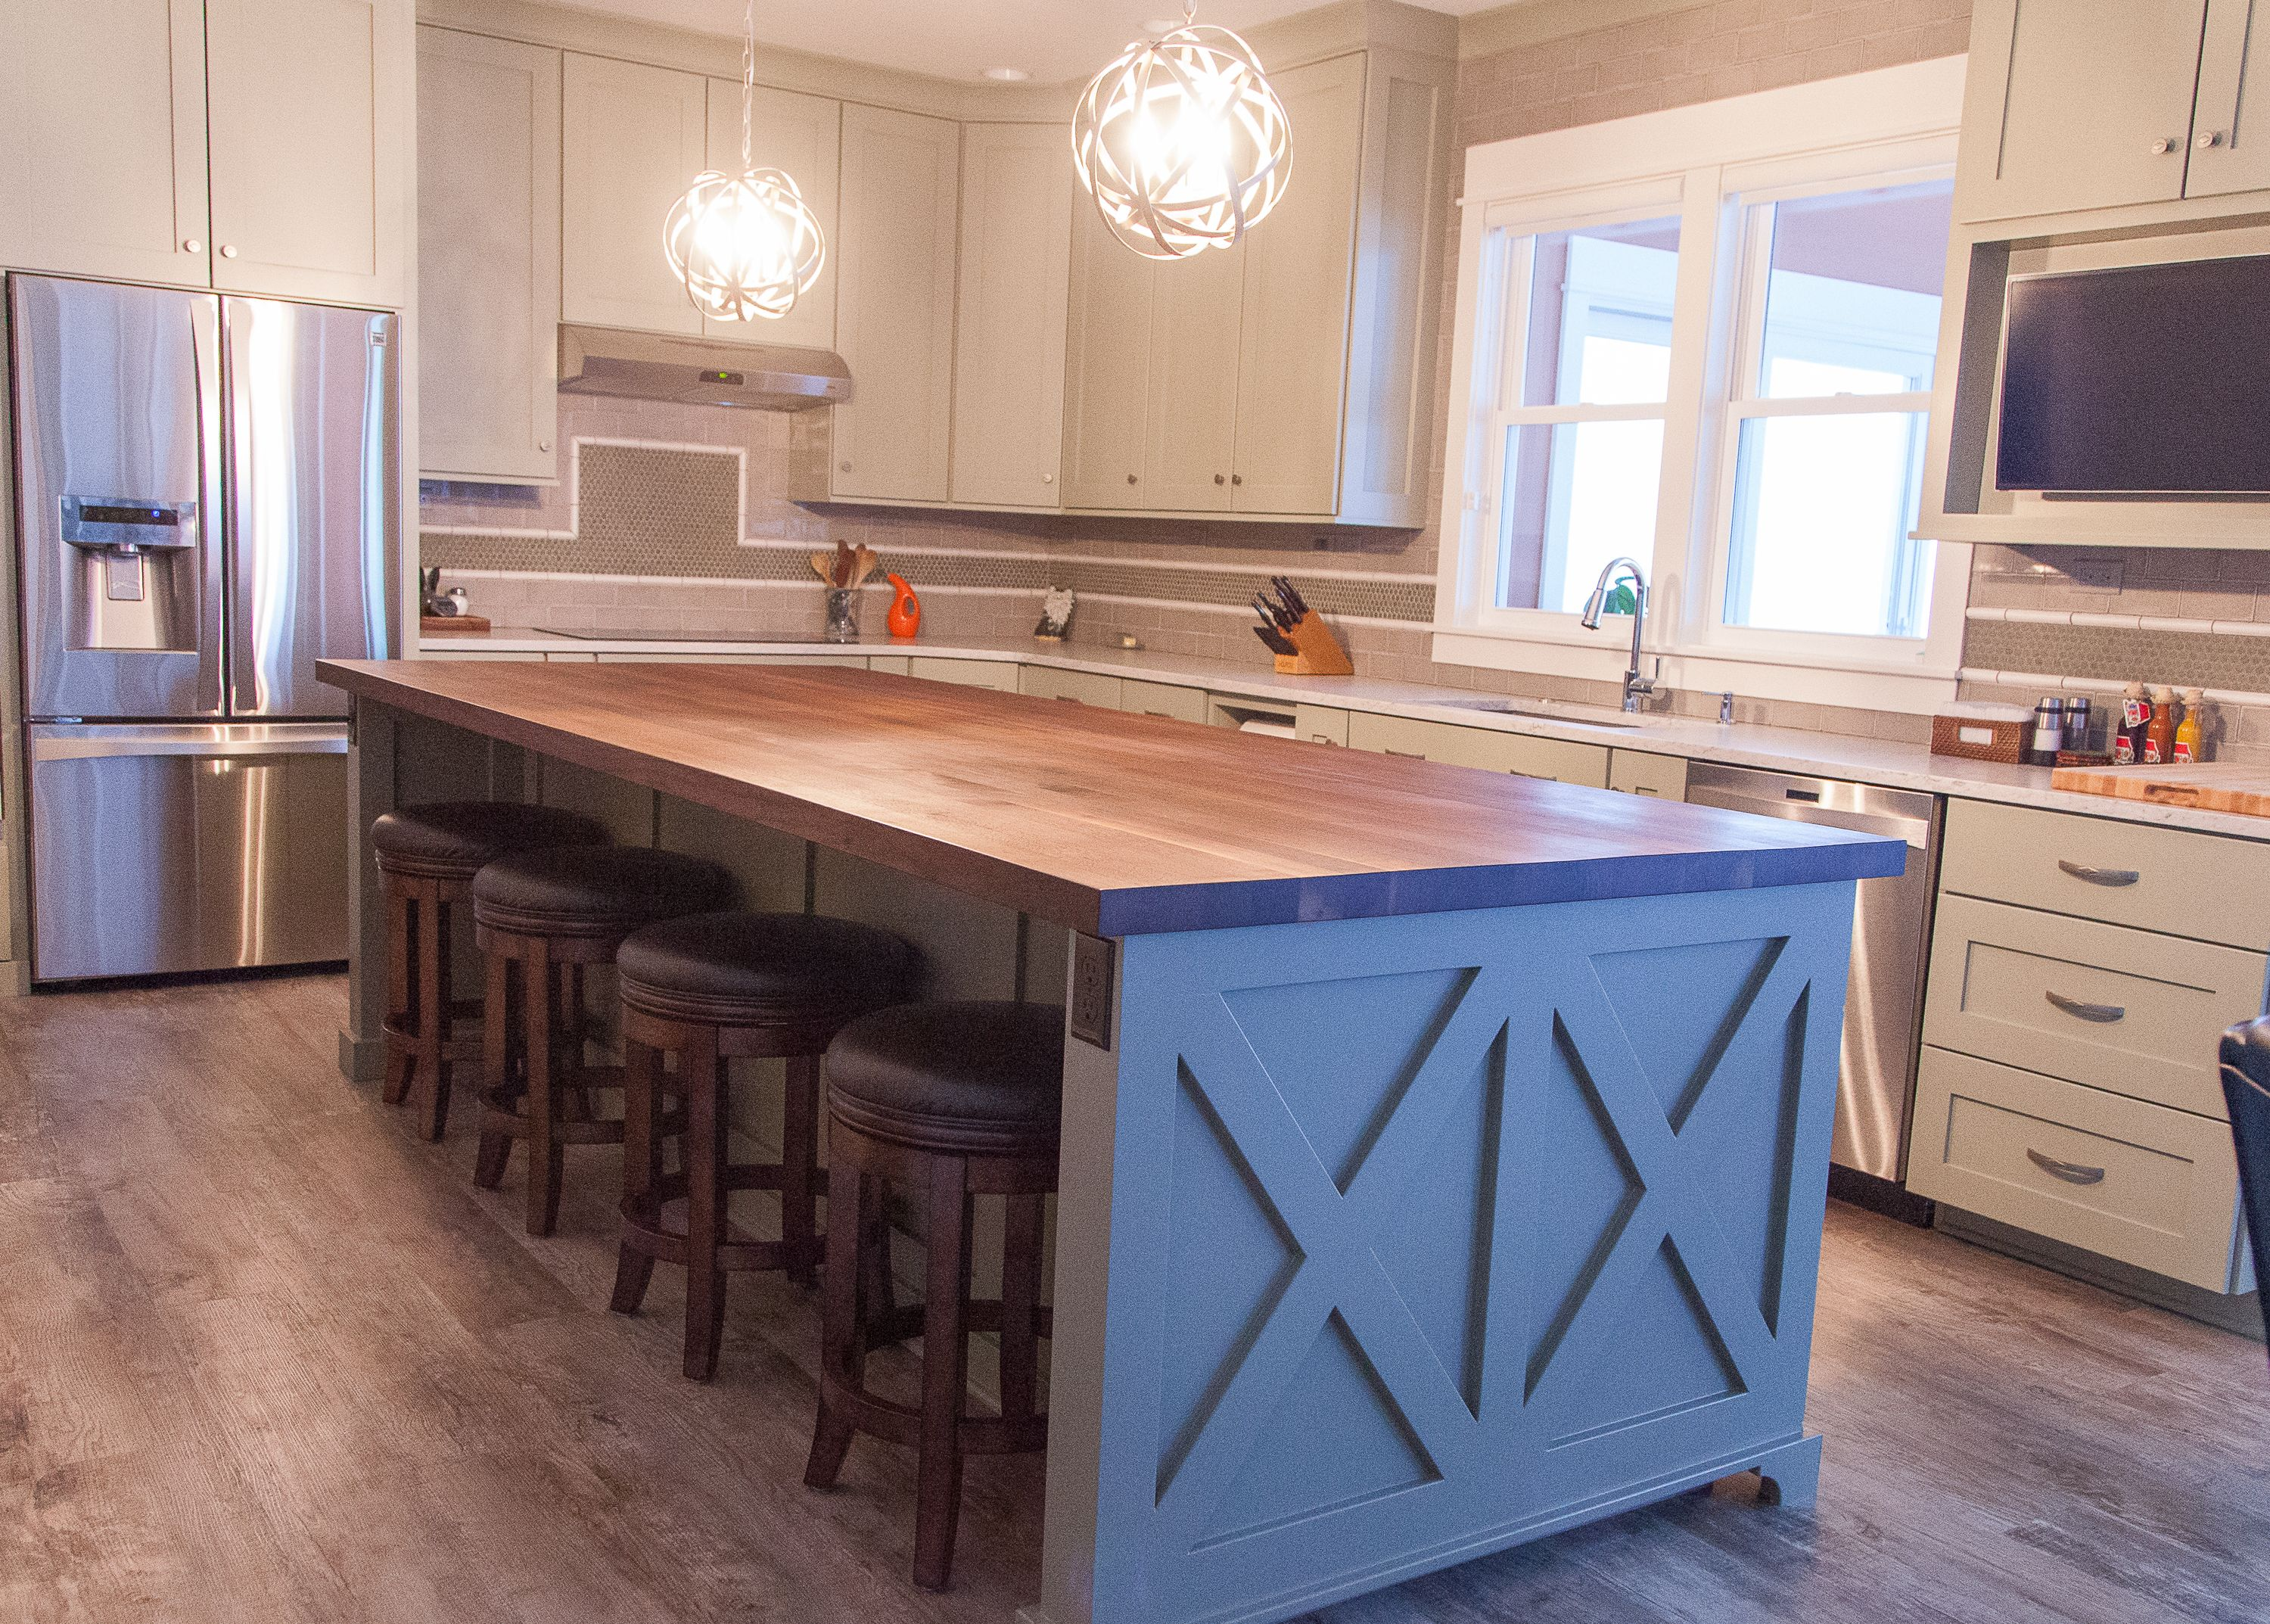 Best 25+ Butcher block island ideas on Pinterest | Kitchen island ...